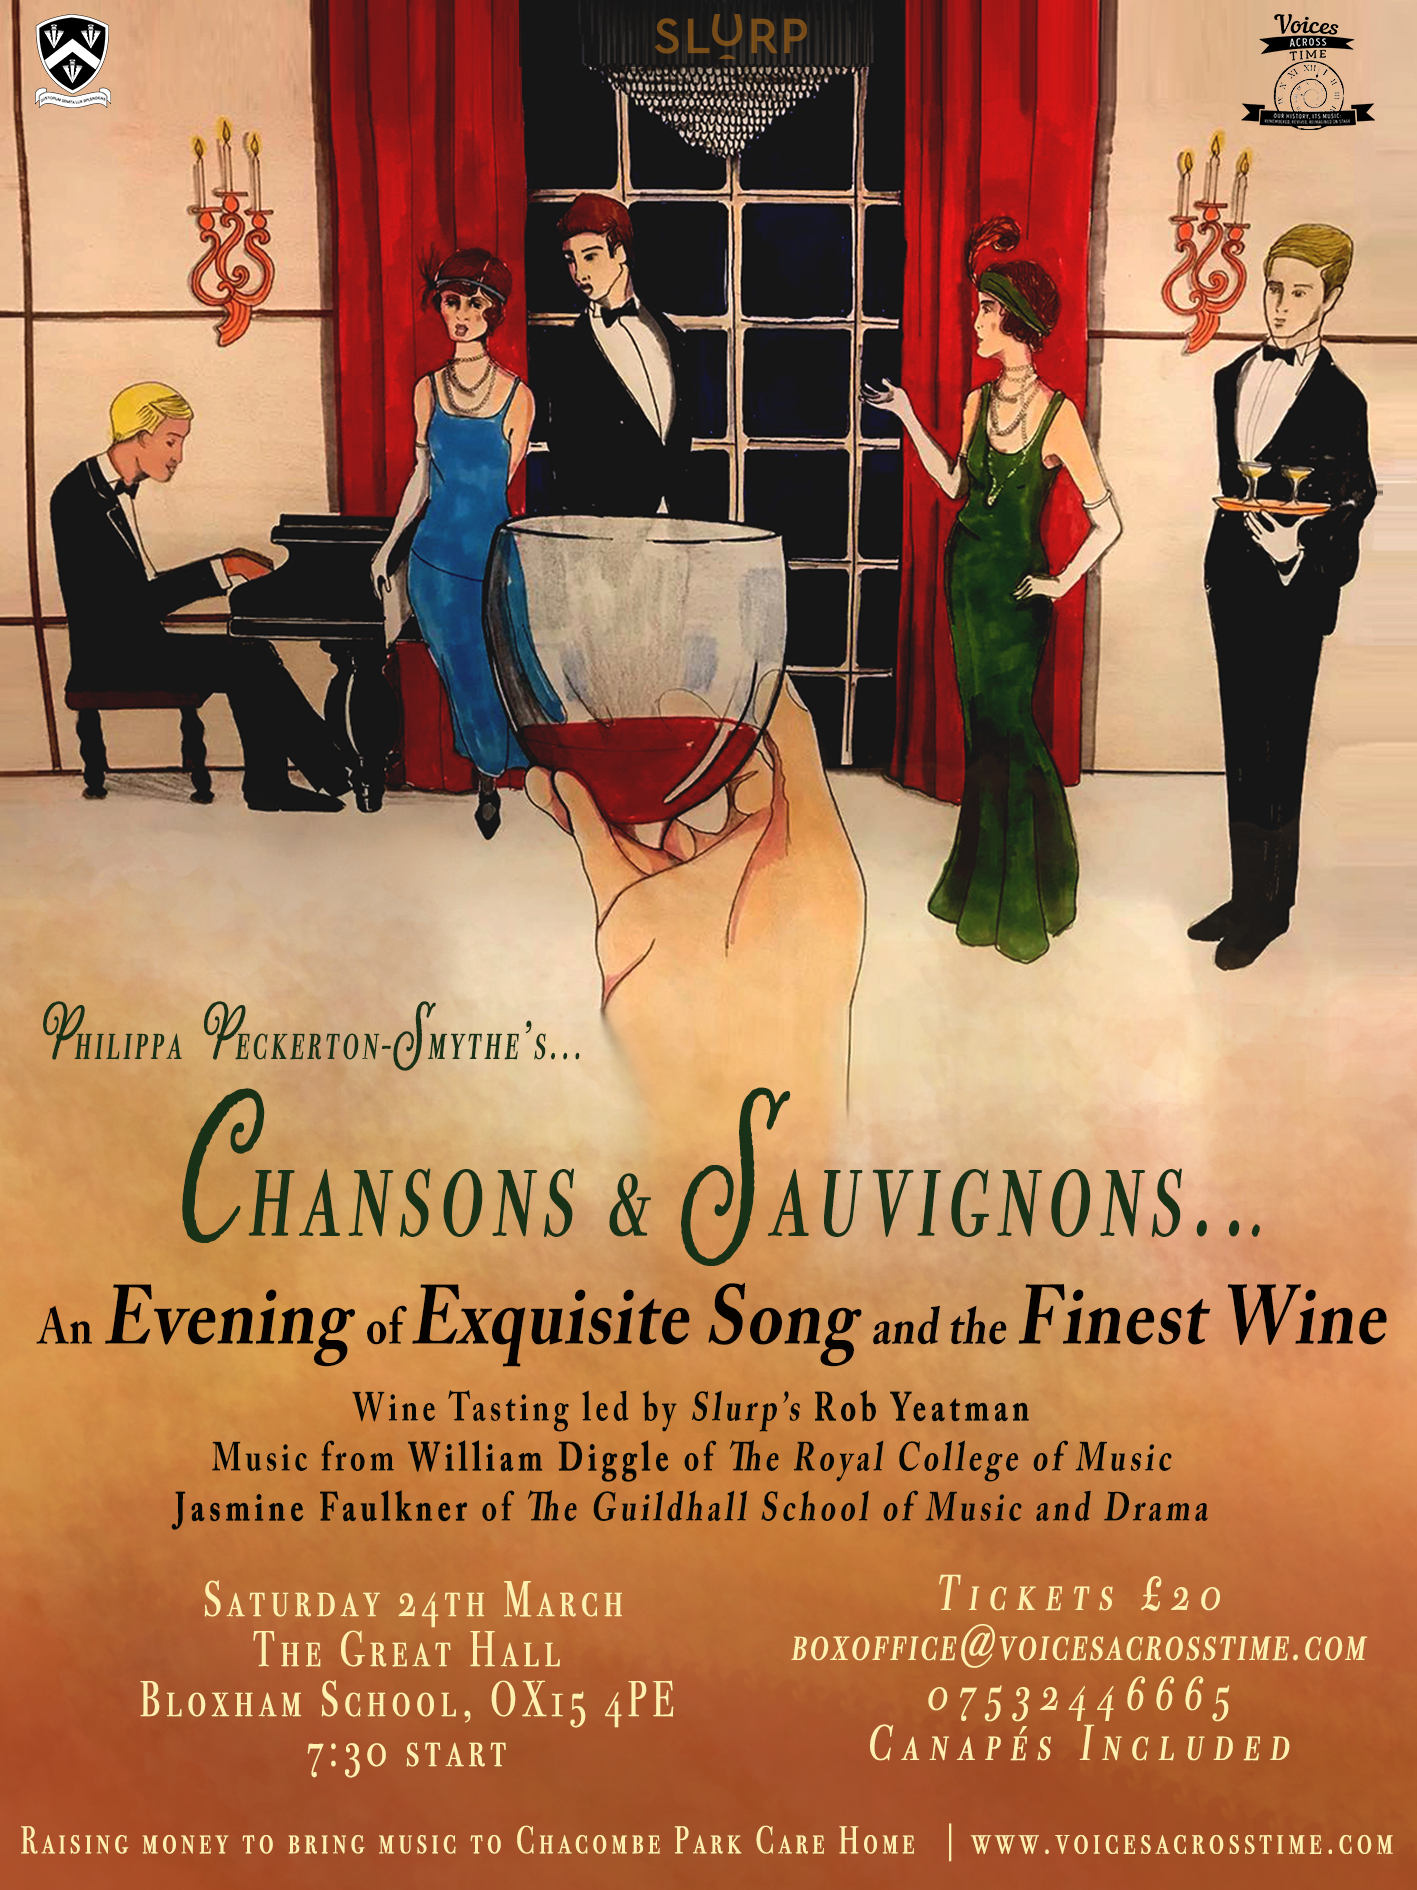 Wine Tasting and Song Evening: 'Chansons & Sauvignons'